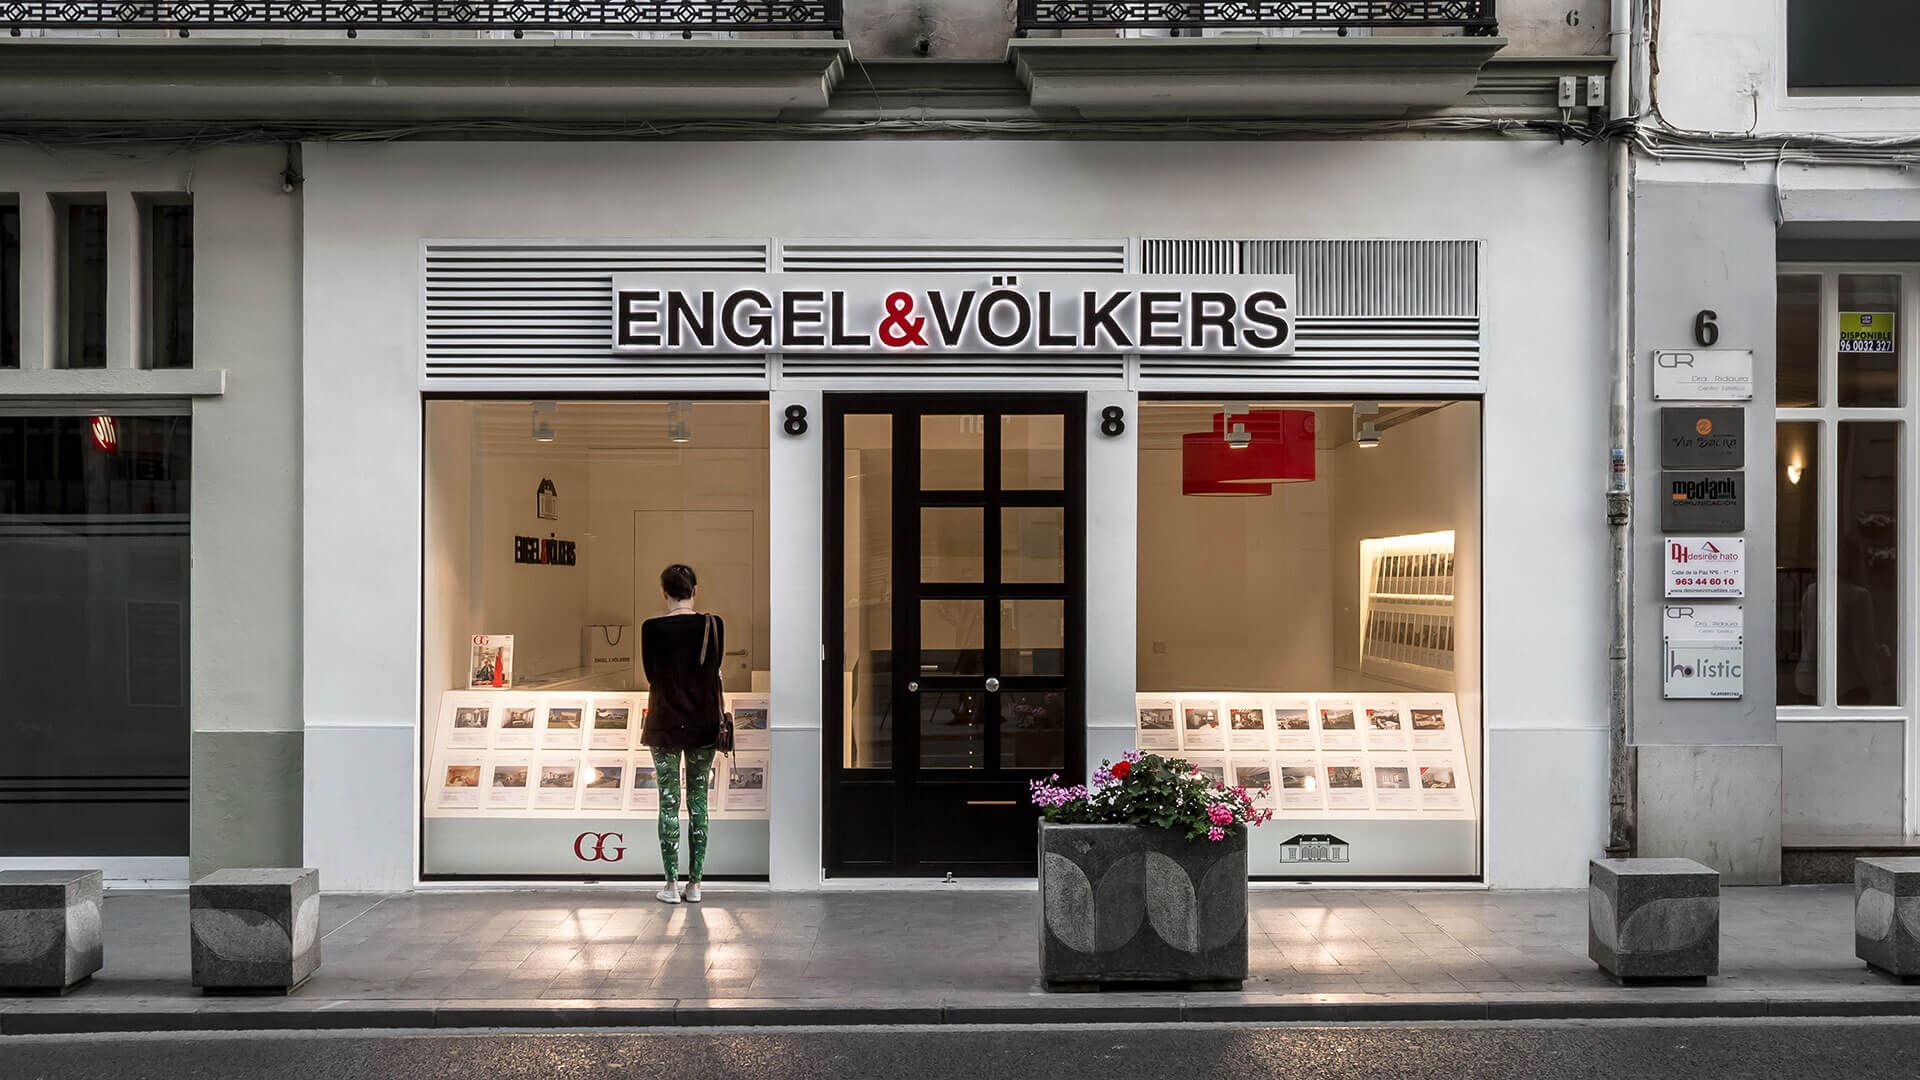 Engel & Völkers best real estate agency in Marbella